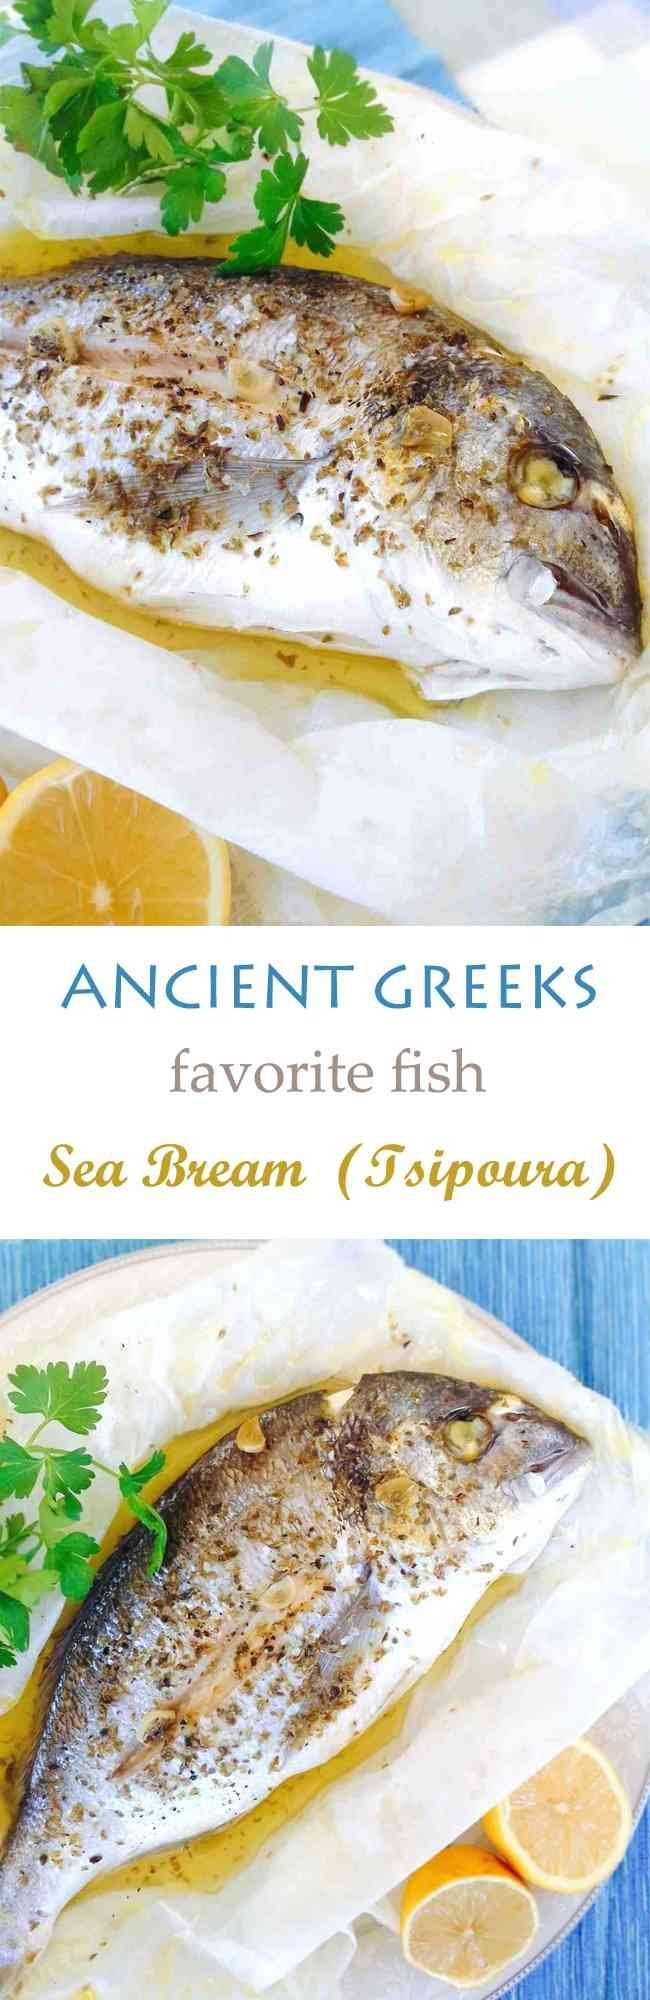 Back in ancient times, Greeks devoted this fish to the goddess Aphrodite for its impeccable taste and attractive looks. Even today, Sea Bream is still considered one of the most delectable fish. It contains a good amount of Ω-mega-3 fat that's so good for the heart. This recipes wraps up the fish so no flavor or aroma gets lost. Cooked with olive oil, lemon and garlic. Your heart will definitely thank you for this meal! #seafood, #fish, #maindish, #healthy, #lowcalorie, #Mediterranean,